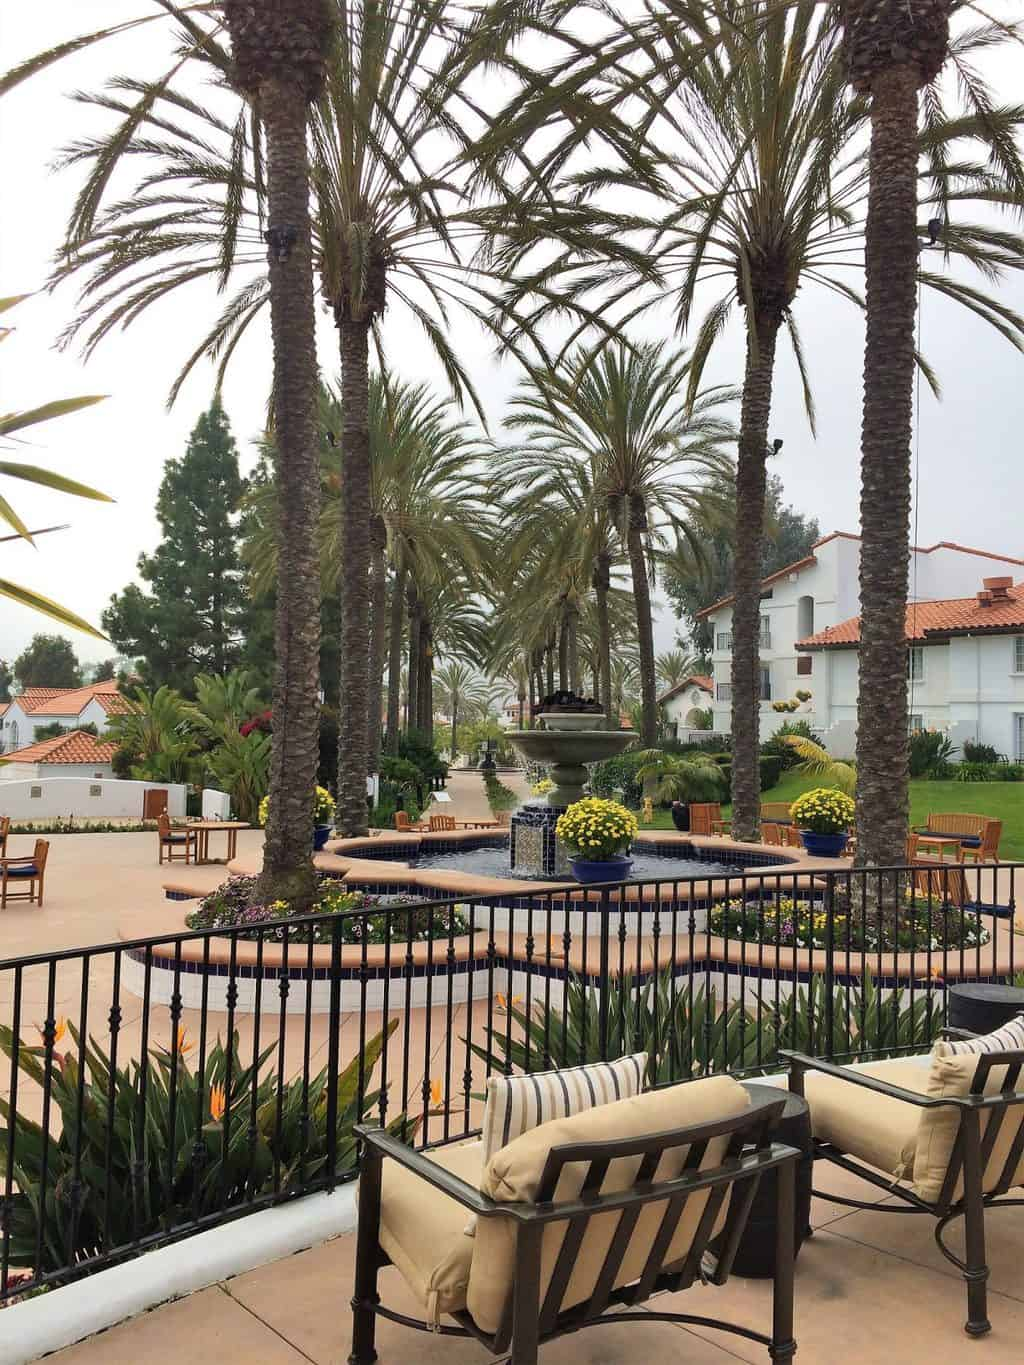 Majestic fountain surrounded by palm trees- Omni Resort La Costa